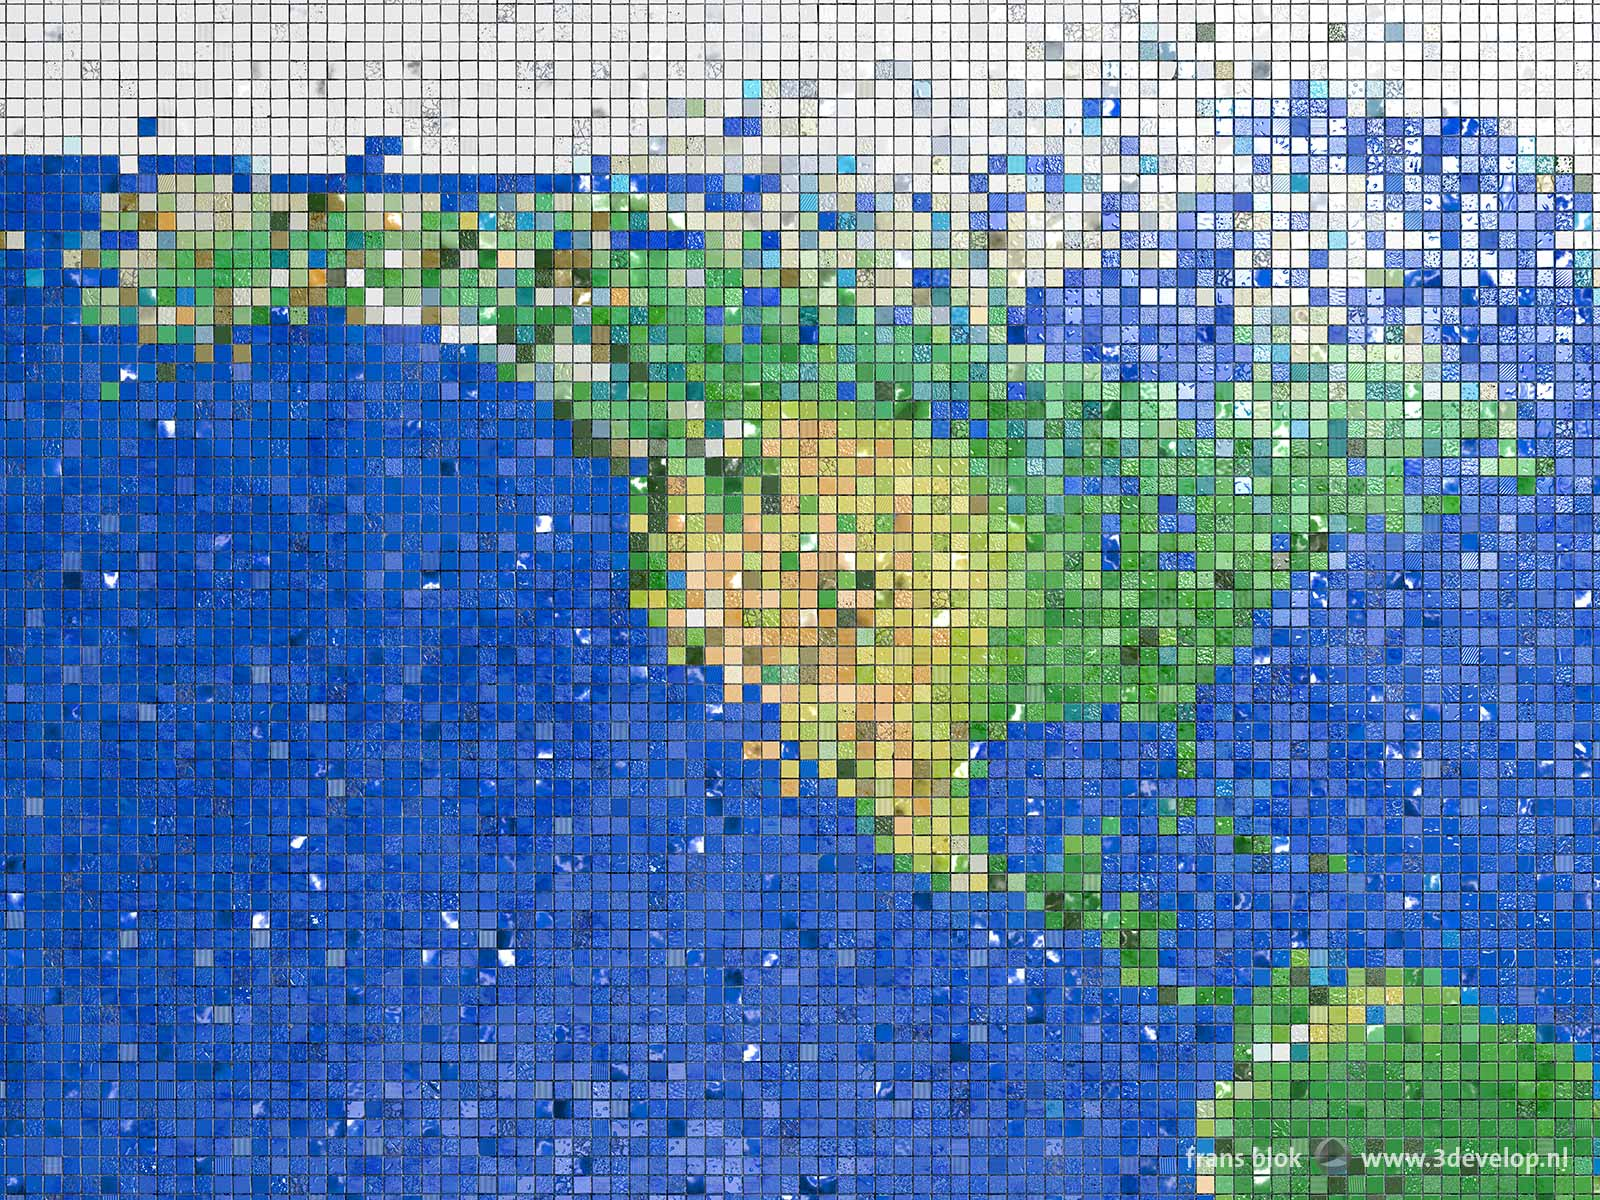 Part of a world map made of little colored mosaic tiles, with North and Central America and parts of the Atlantic and Pacific Oceans